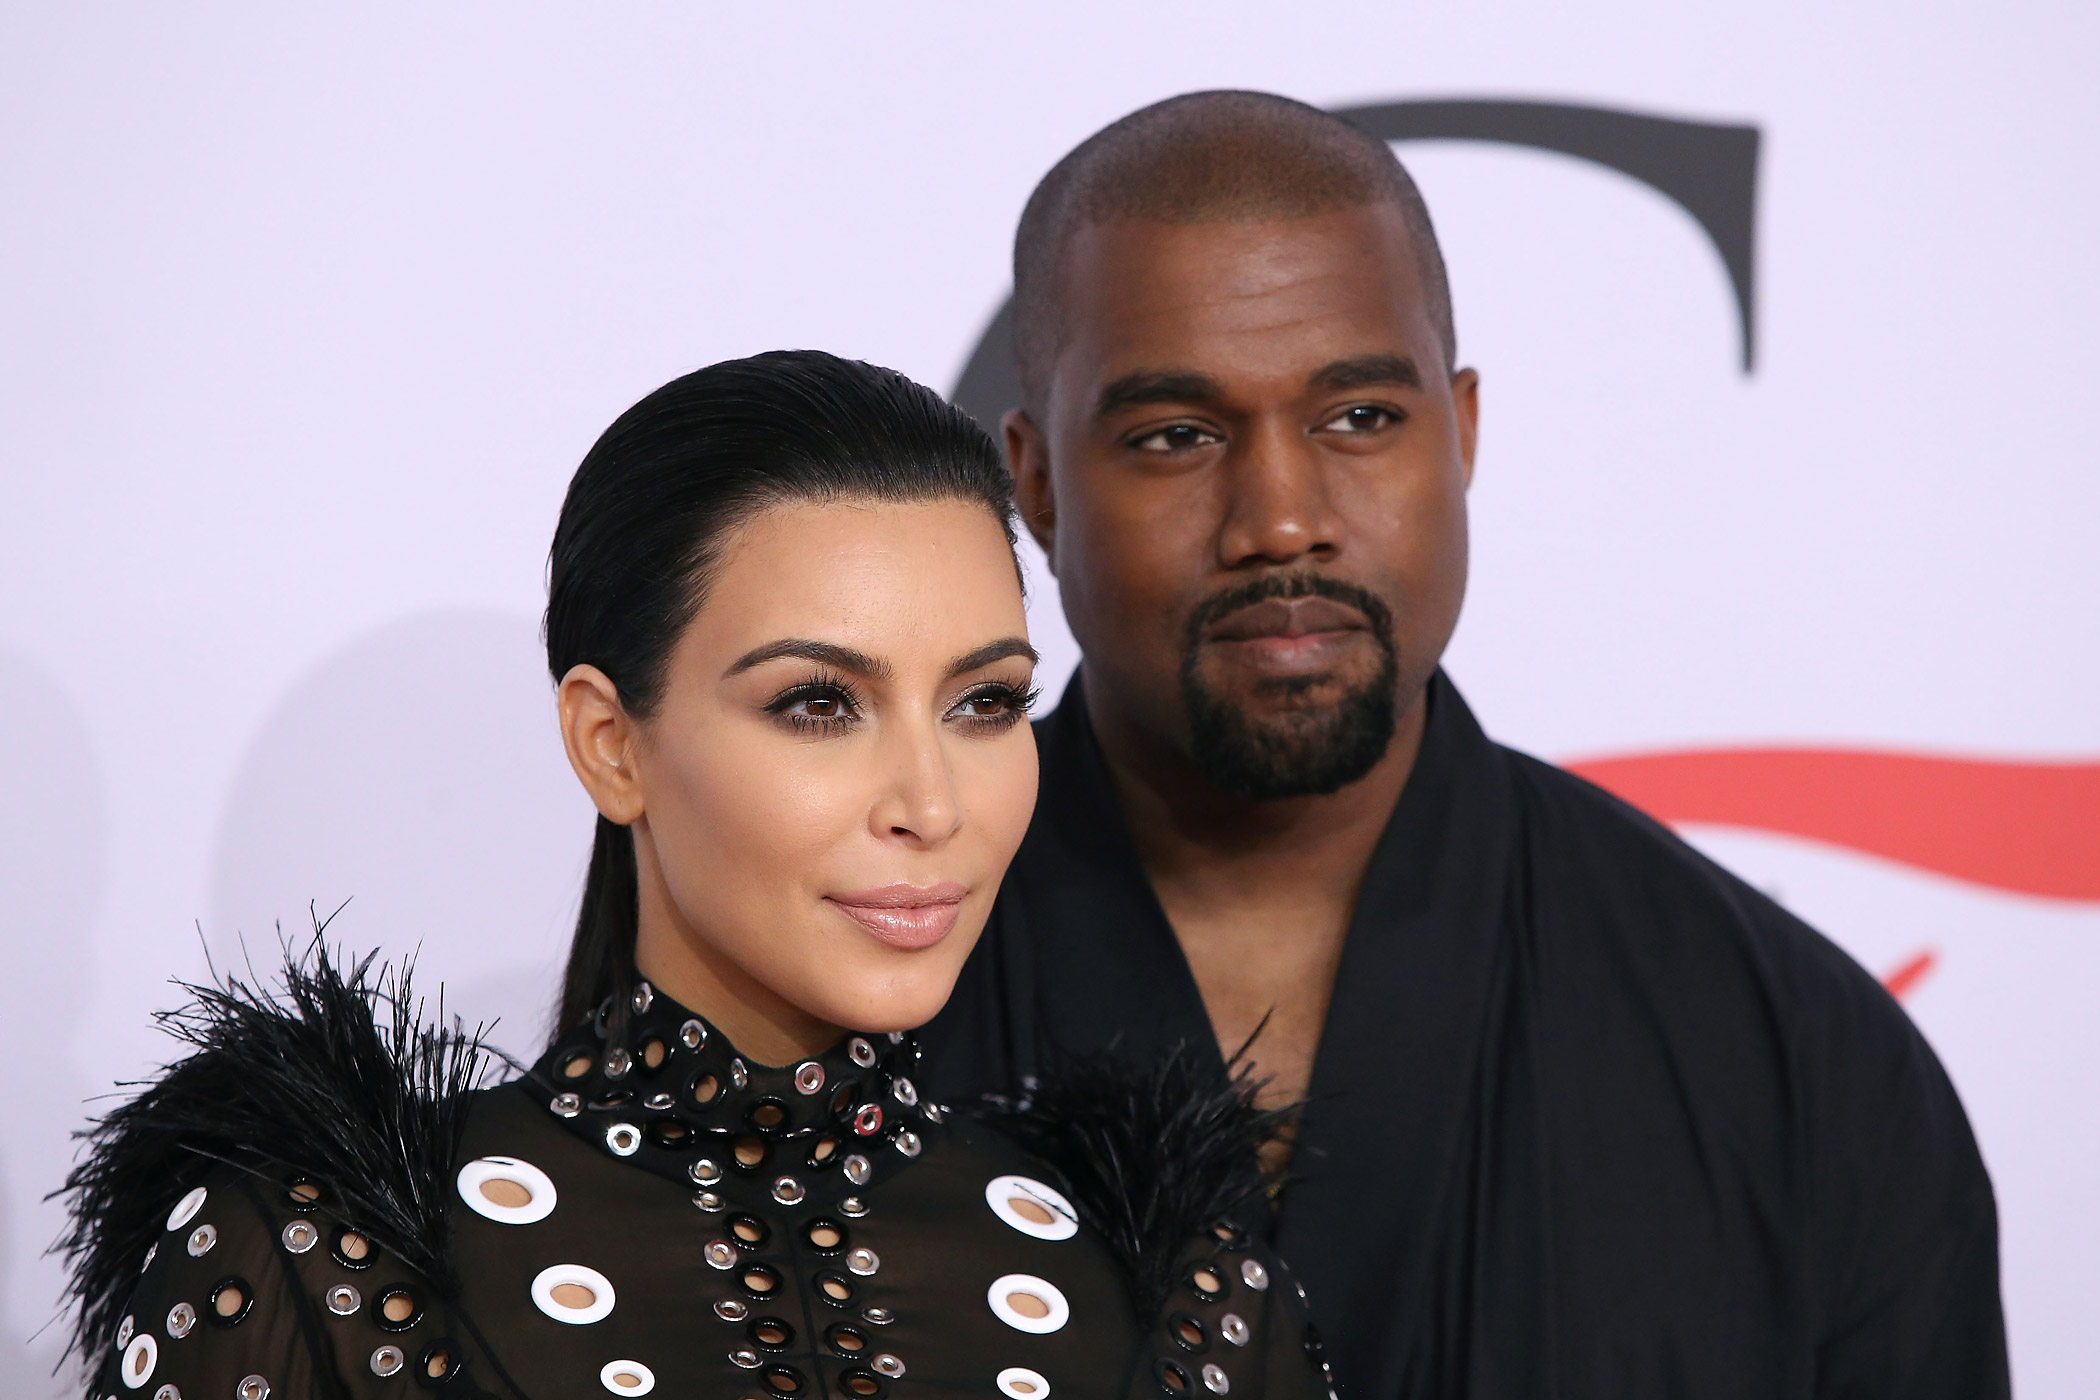 Kim Kardashian and Kanye West attend the CFDA Awards at Alice Tully Hall at Lincoln Center in New York City on June 1, 2015